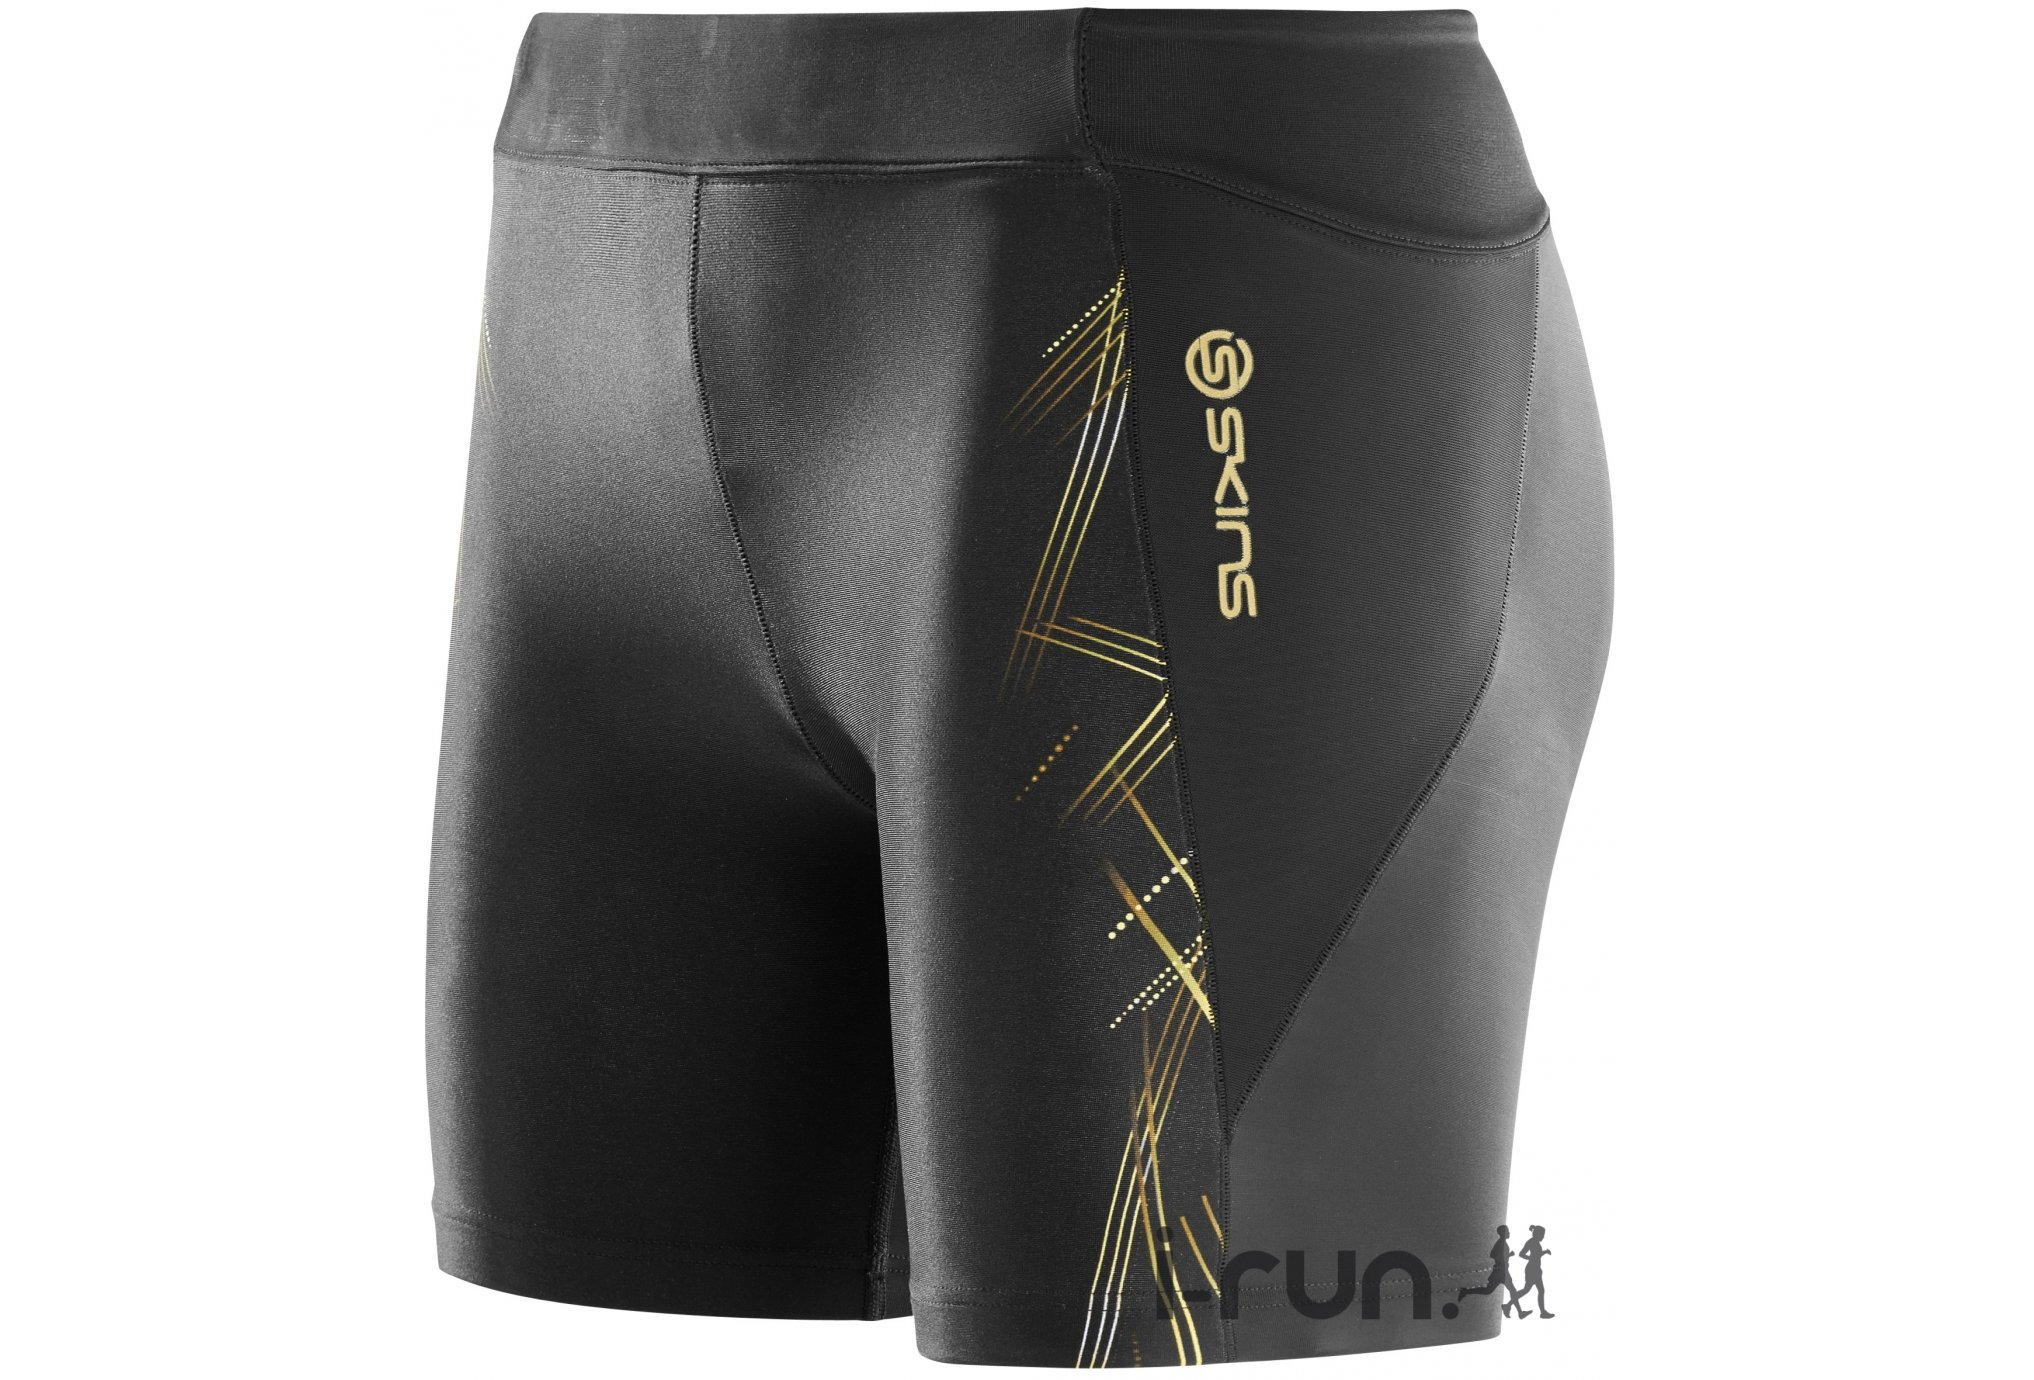 Skins Short A400 Active W vêtement running femme